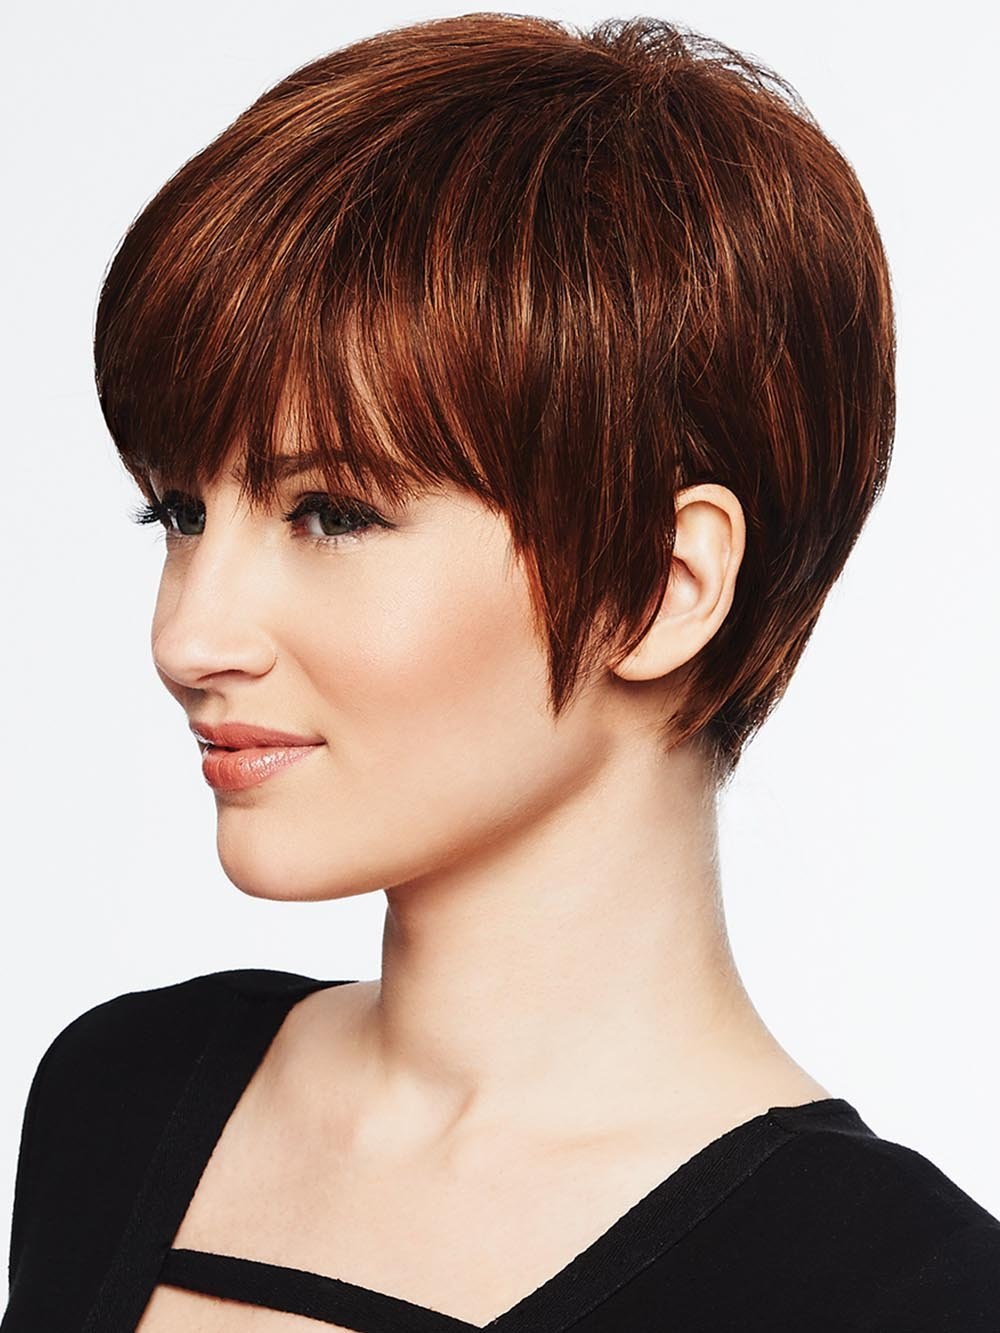 New By Hairdo Short Textured Pixie Cut Heat Friendly Wig Hair